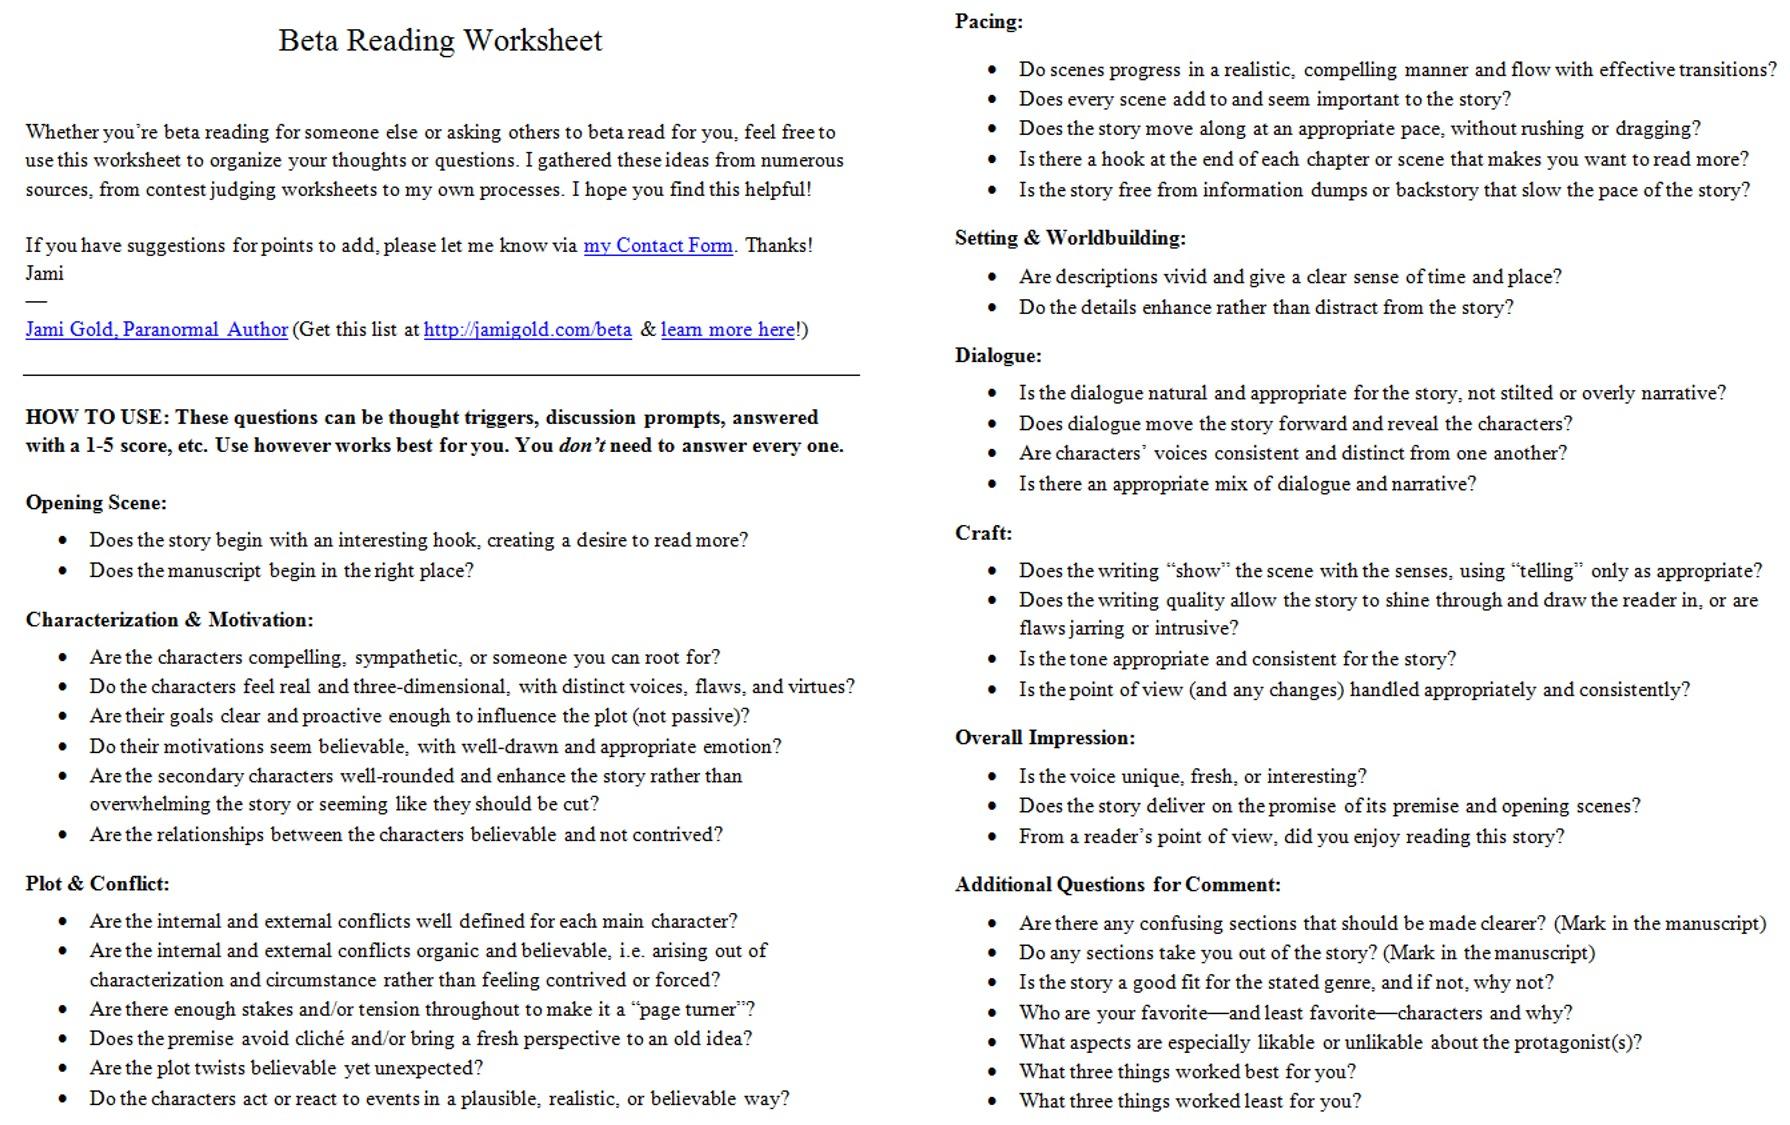 Proatmealus  Gorgeous Worksheets For Writers  Jami Gold Paranormal Author With Foxy Screen Shot Of The Twopage Beta Reading Worksheet With Charming Exponent Rules Worksheets Also Math Facts Multiplication Worksheet In Addition Cut And Paste Worksheets For Preschoolers And Common Core Practice Worksheets As Well As Decimals To Percents Worksheets Additionally Th Grade Word Problems Worksheet From Jamigoldcom With Proatmealus  Foxy Worksheets For Writers  Jami Gold Paranormal Author With Charming Screen Shot Of The Twopage Beta Reading Worksheet And Gorgeous Exponent Rules Worksheets Also Math Facts Multiplication Worksheet In Addition Cut And Paste Worksheets For Preschoolers From Jamigoldcom